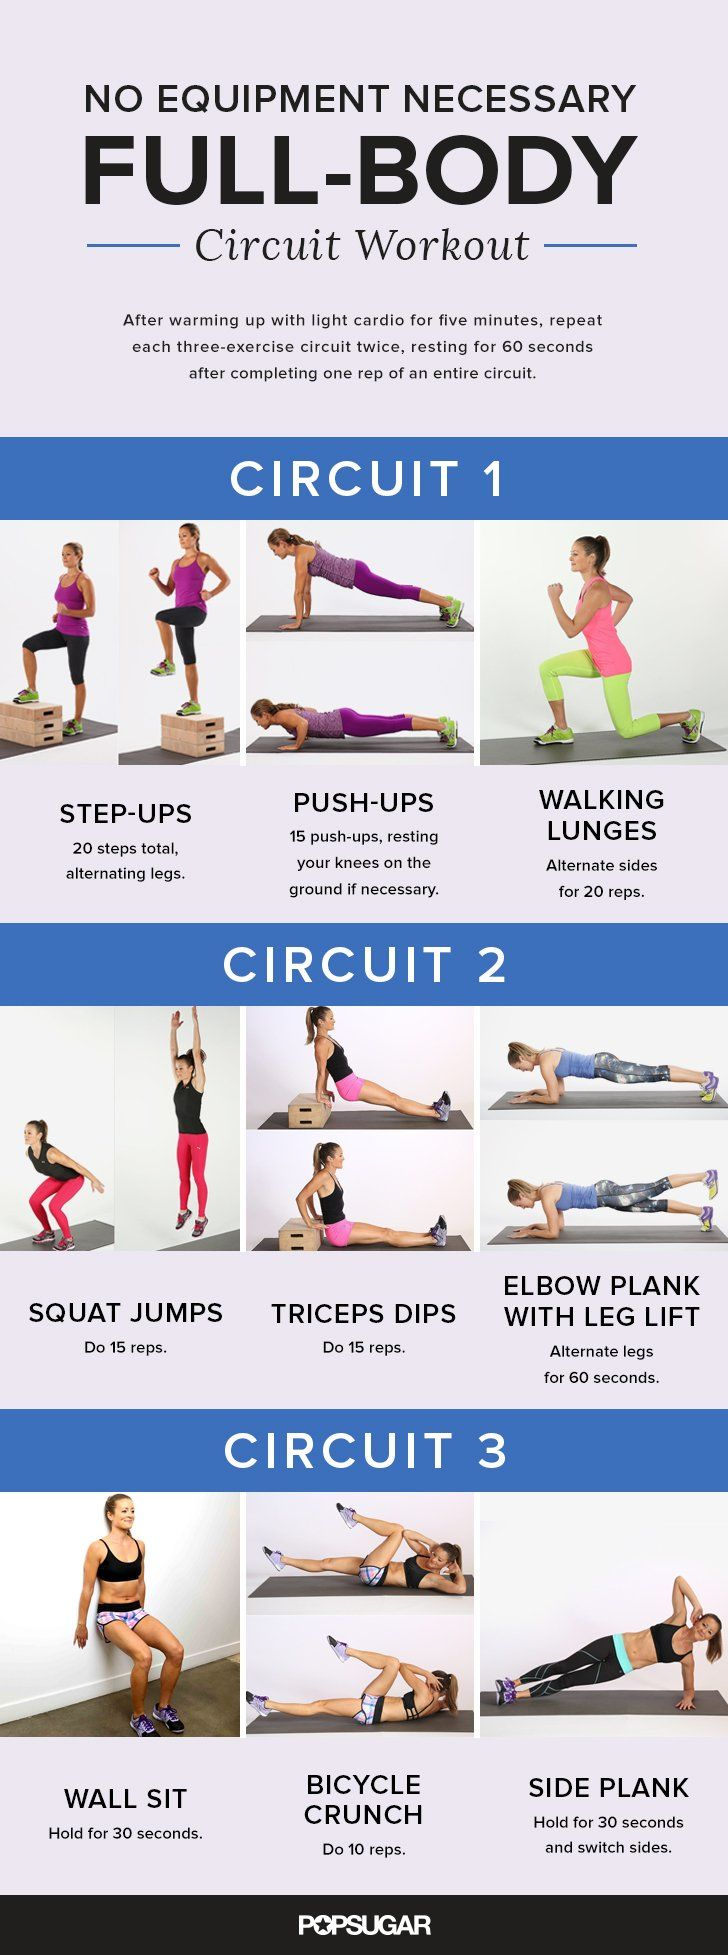 Printable Full-Body Circuit Workout —No Equipment Needed!